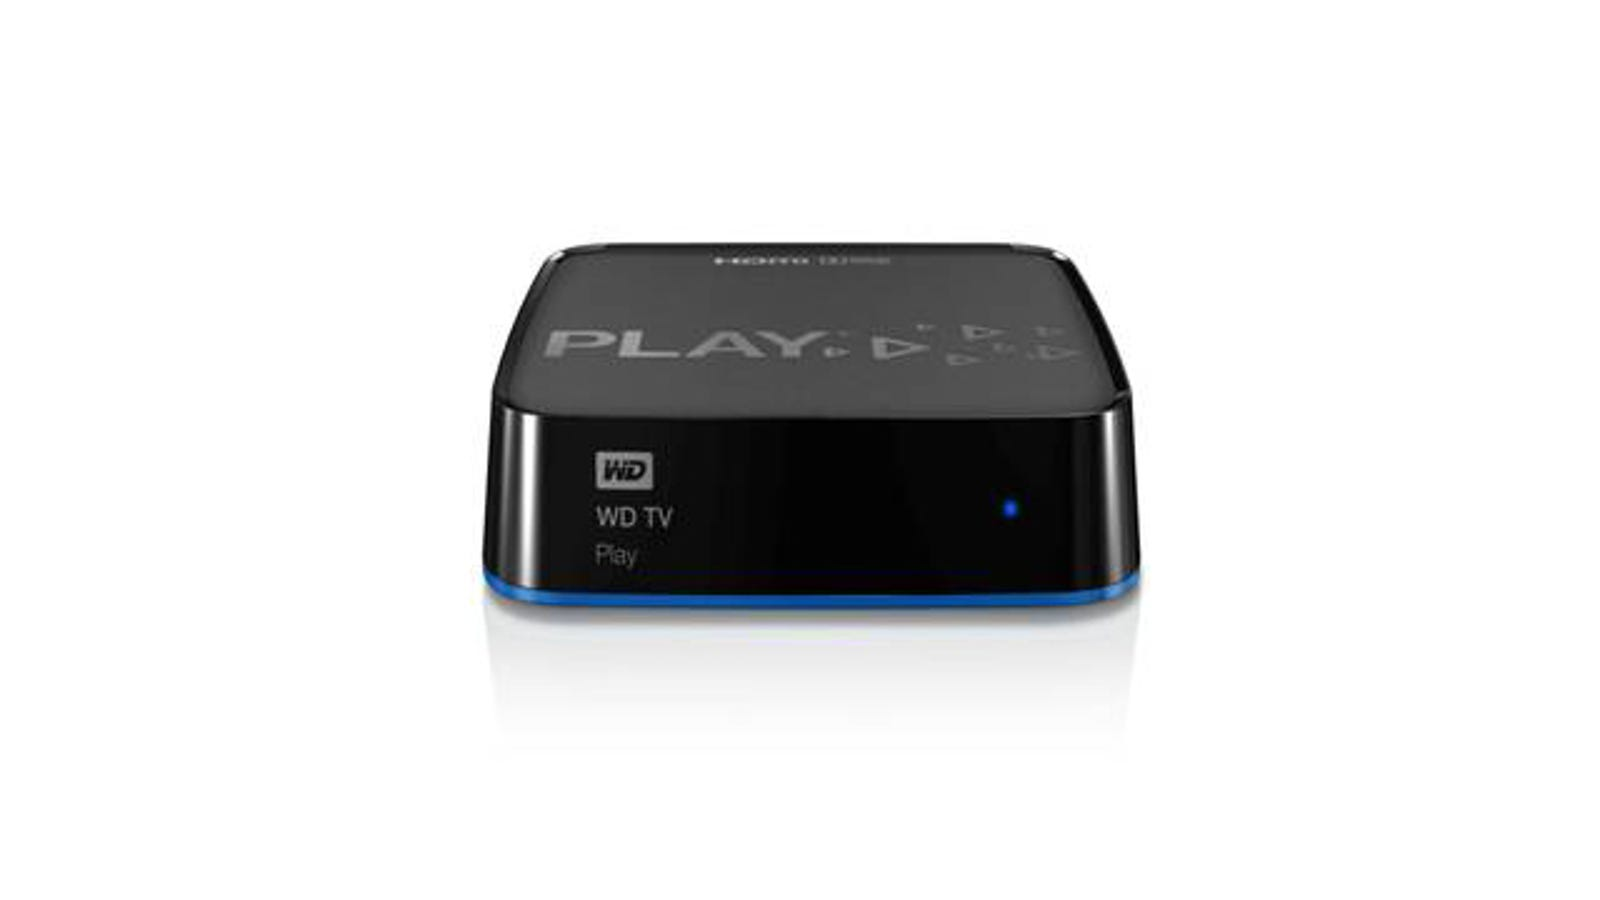 Western Digital's WD TV Play Is Its New Streaming Black Box